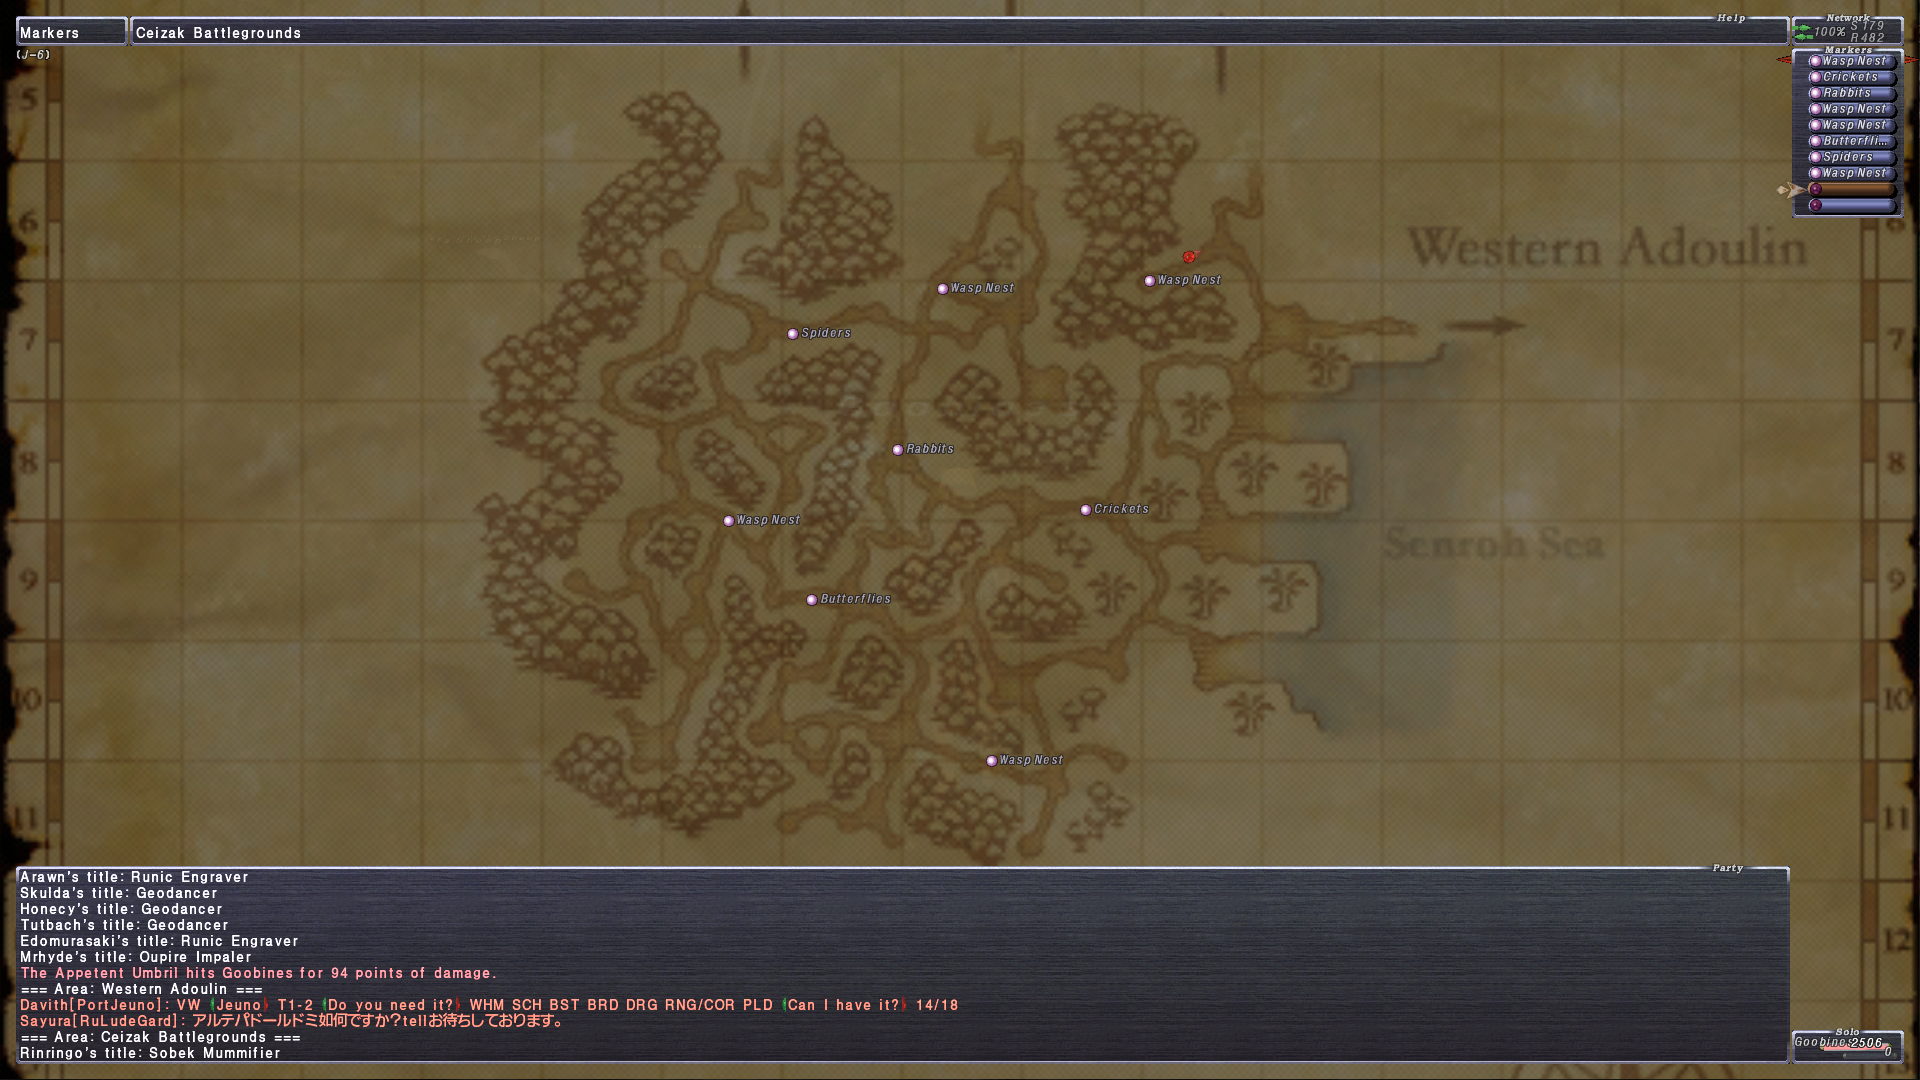 verby ffxi remember gh-67 believe bottom below area south half upper also reive bigger open areas mining back hopefully routes used going reives down gelid lair from might easy ones gates were tell where exactly yeah thread hypocritical missing cant tried speaking relatively colonization look iirc thru small pretty long time kamihr